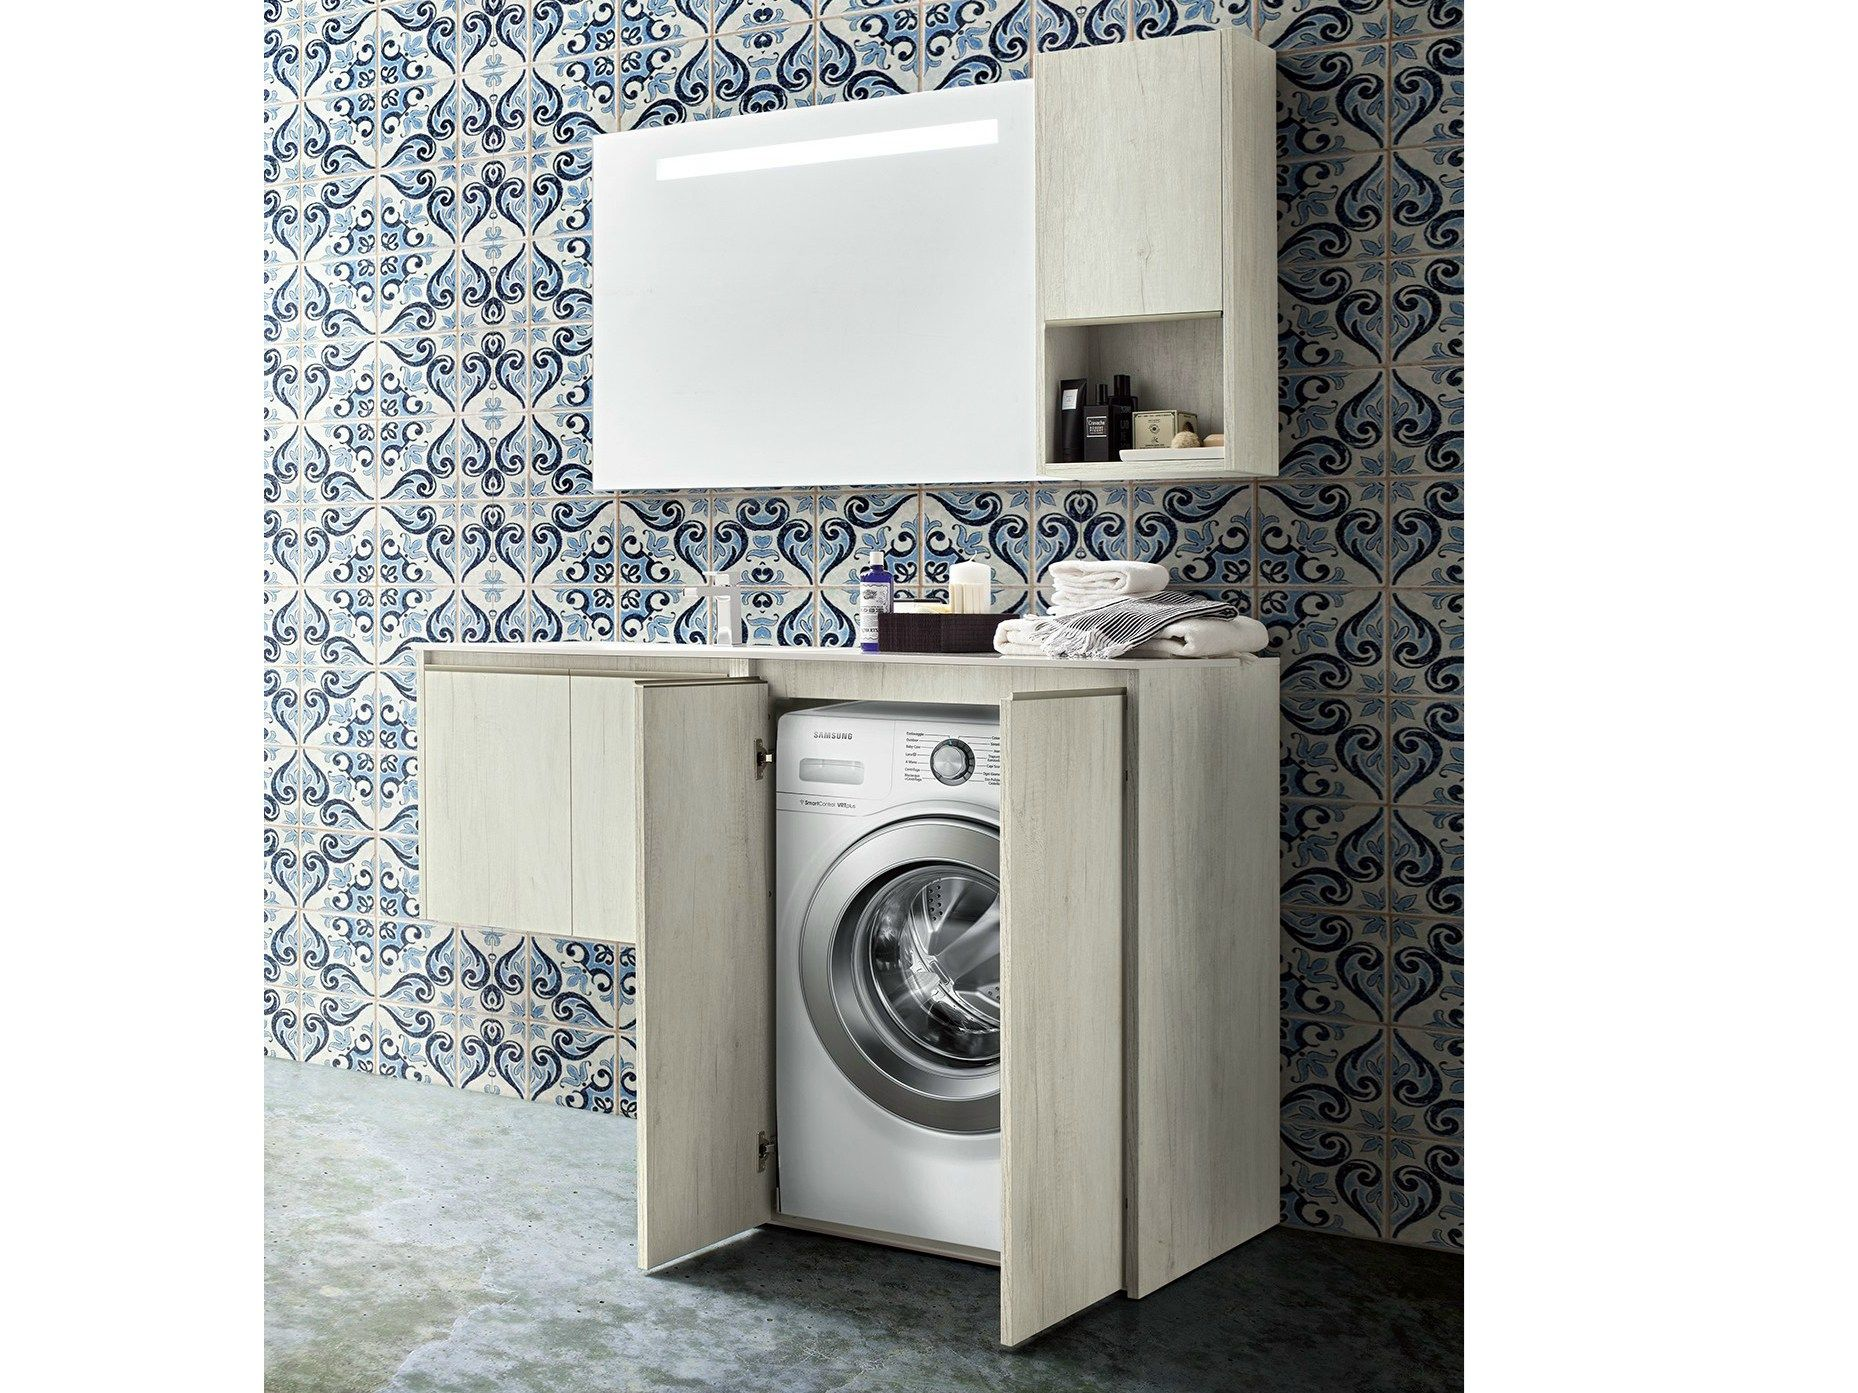 Meuble Pour Salle De Bain Composable Movida 38 41 Collection Movida By Cerasa Design Stefano Spessotto Lorella Laundry Room Cabinets Cleaning Household Home